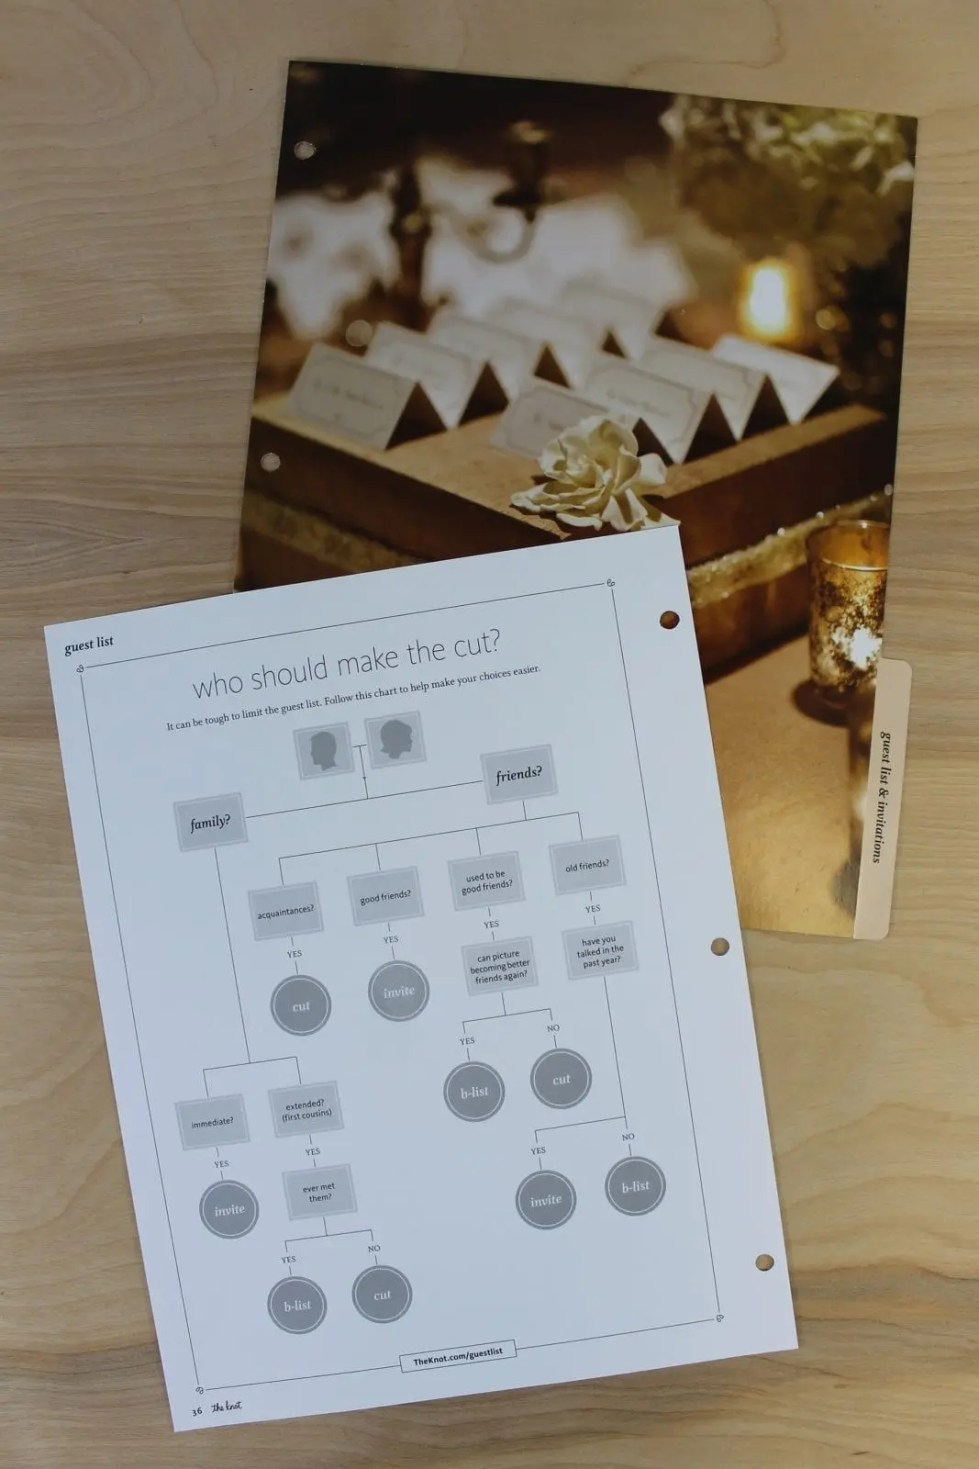 The Knot's Wedding Planner- charts and diagrams